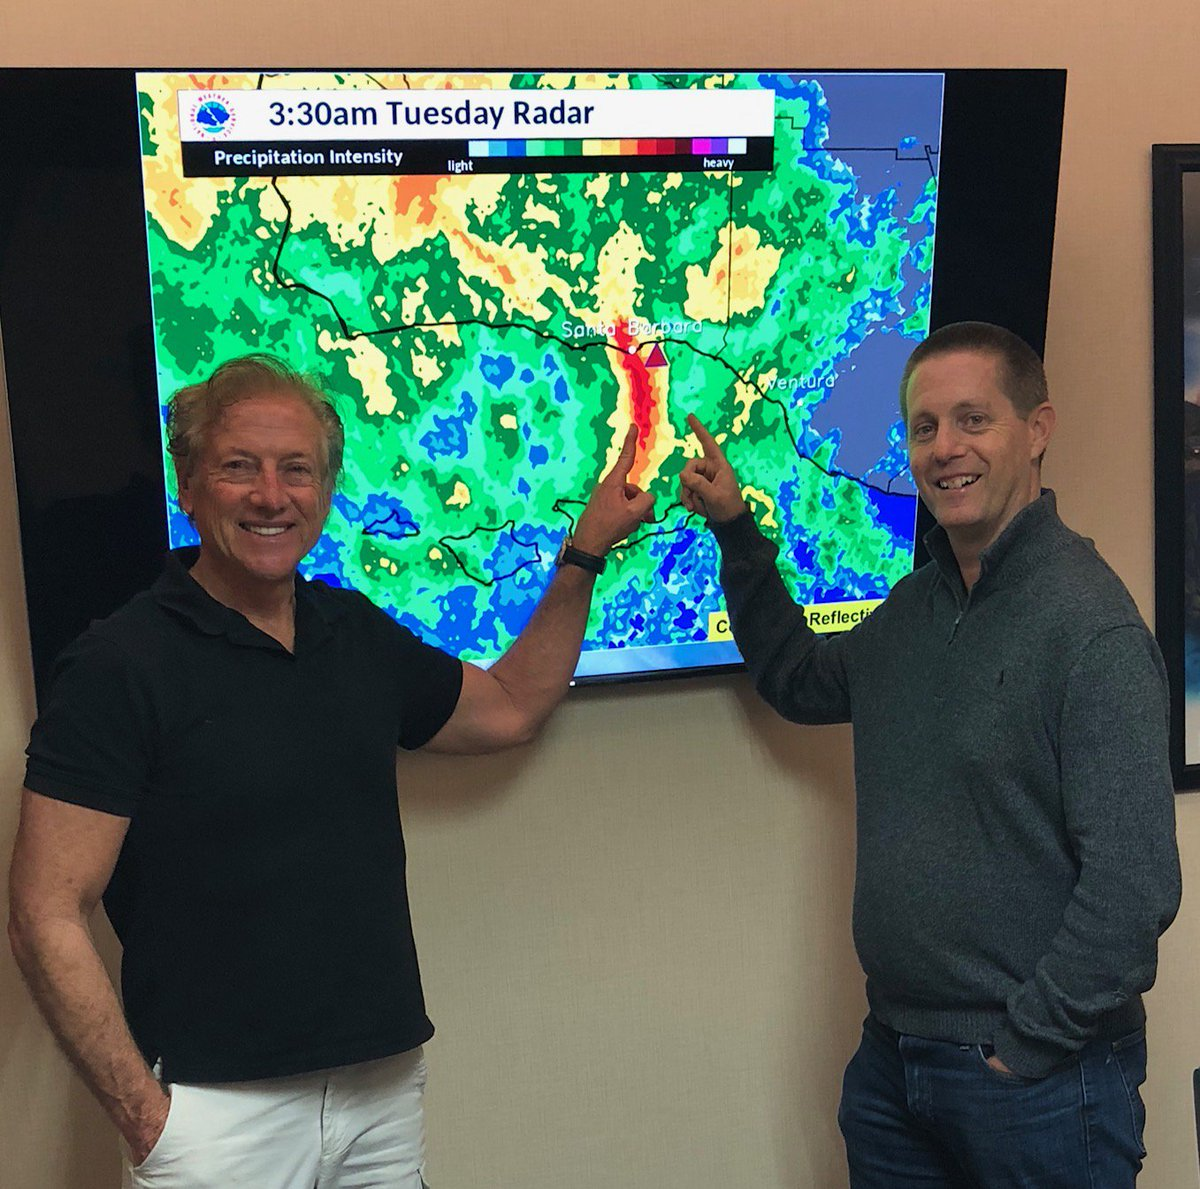 @abc7dallas Dallas Raines visited the @NWSLosAngeles  Sunday eve working with Dave Gomberg and  @Curtkap in learning details of the #Montecito debris flow in respect to Decision Support before and after the devastating event.  Our media partners are essential for messaging. #cawx